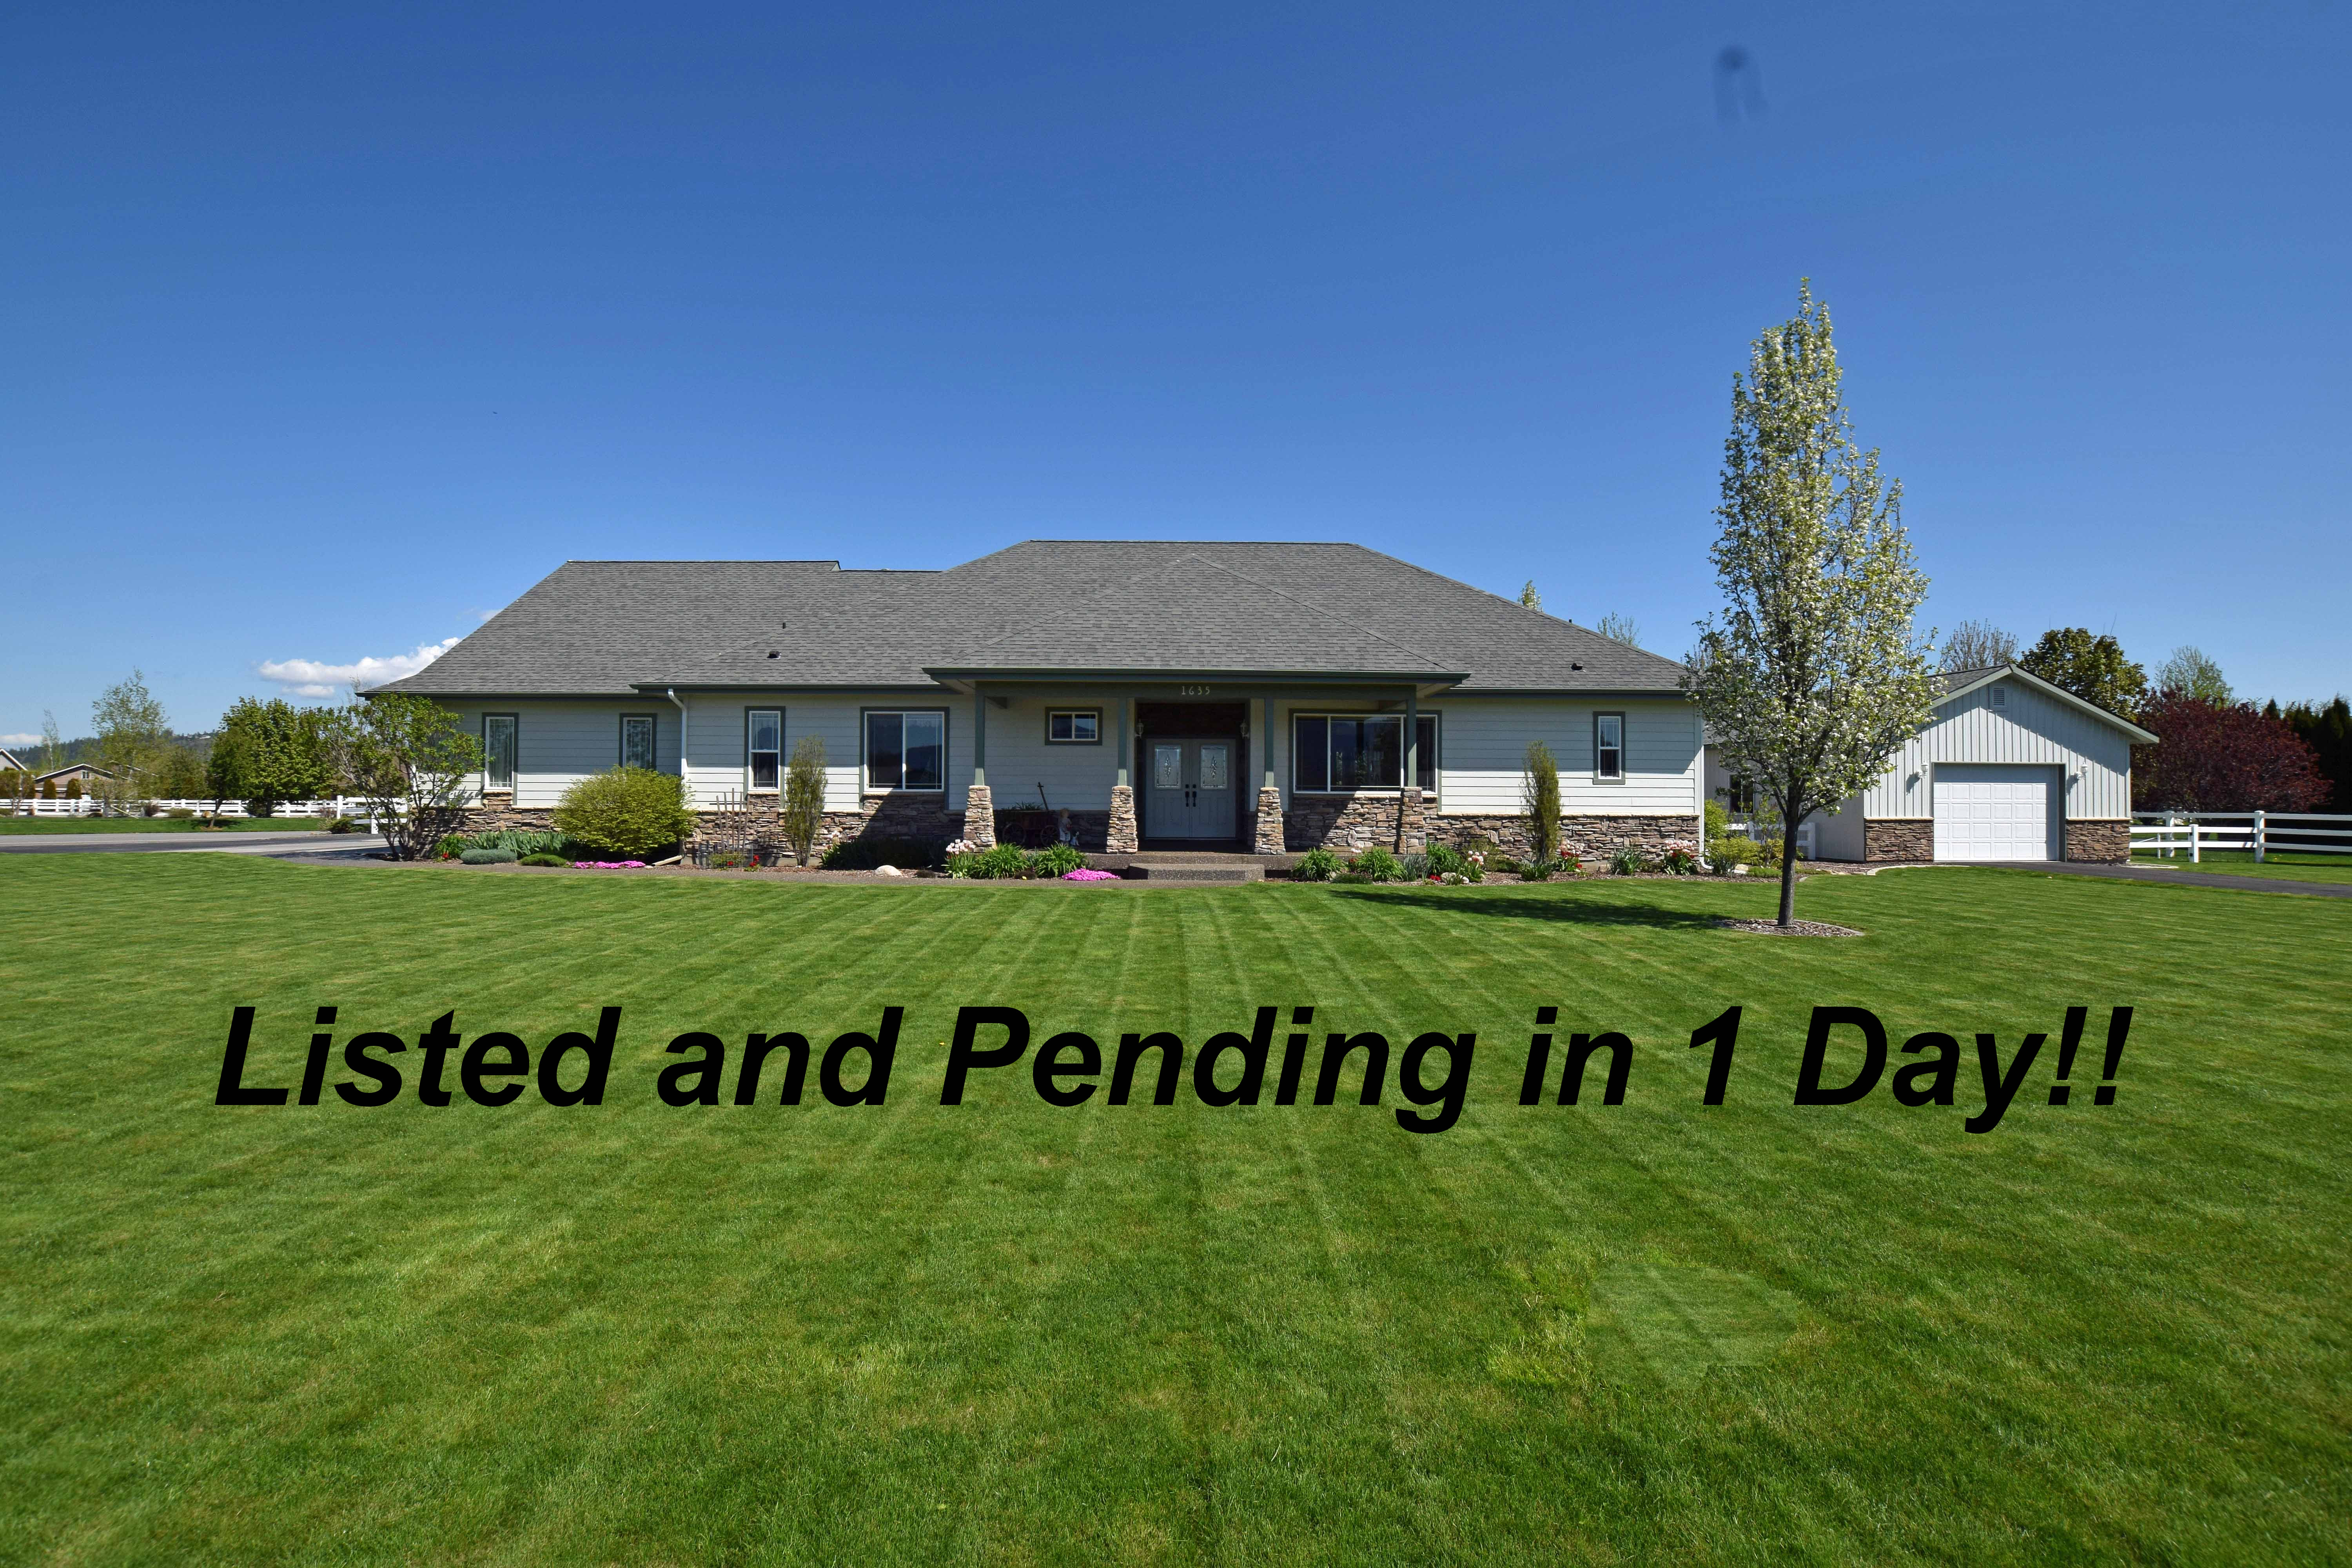 Listed and Pending in 1 Day!